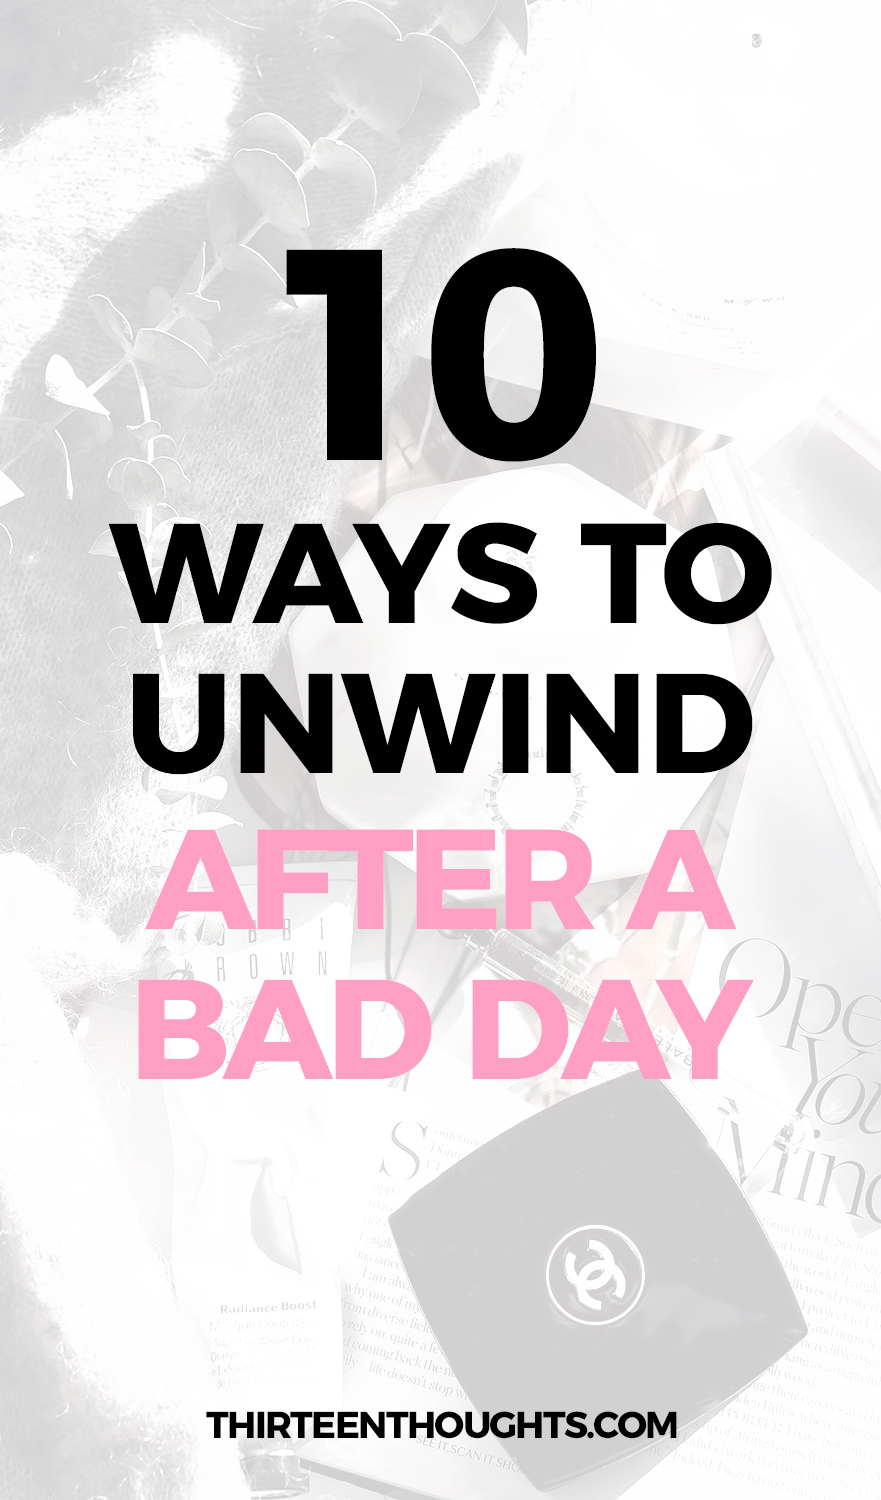 HOW TO UNWIND AFTER A BAD DAY #stress #wellness #selfgrowth #life #lifestyleblog #advice #minduflness #realx #selfcare #selflove #routines #quotes #love